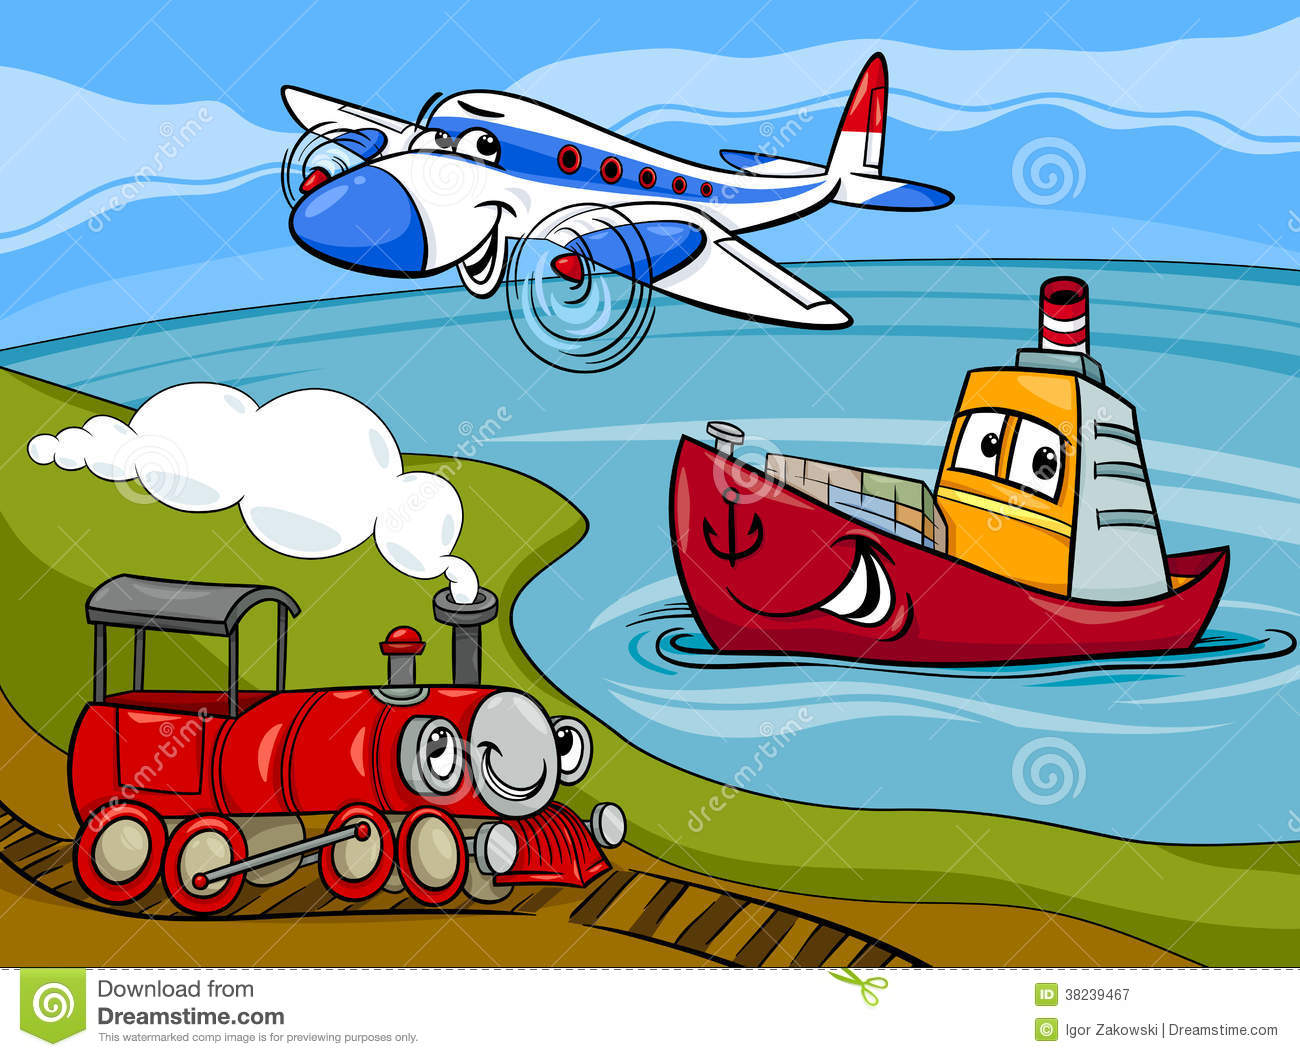 plane-ship-train-cartoon-illustration-38